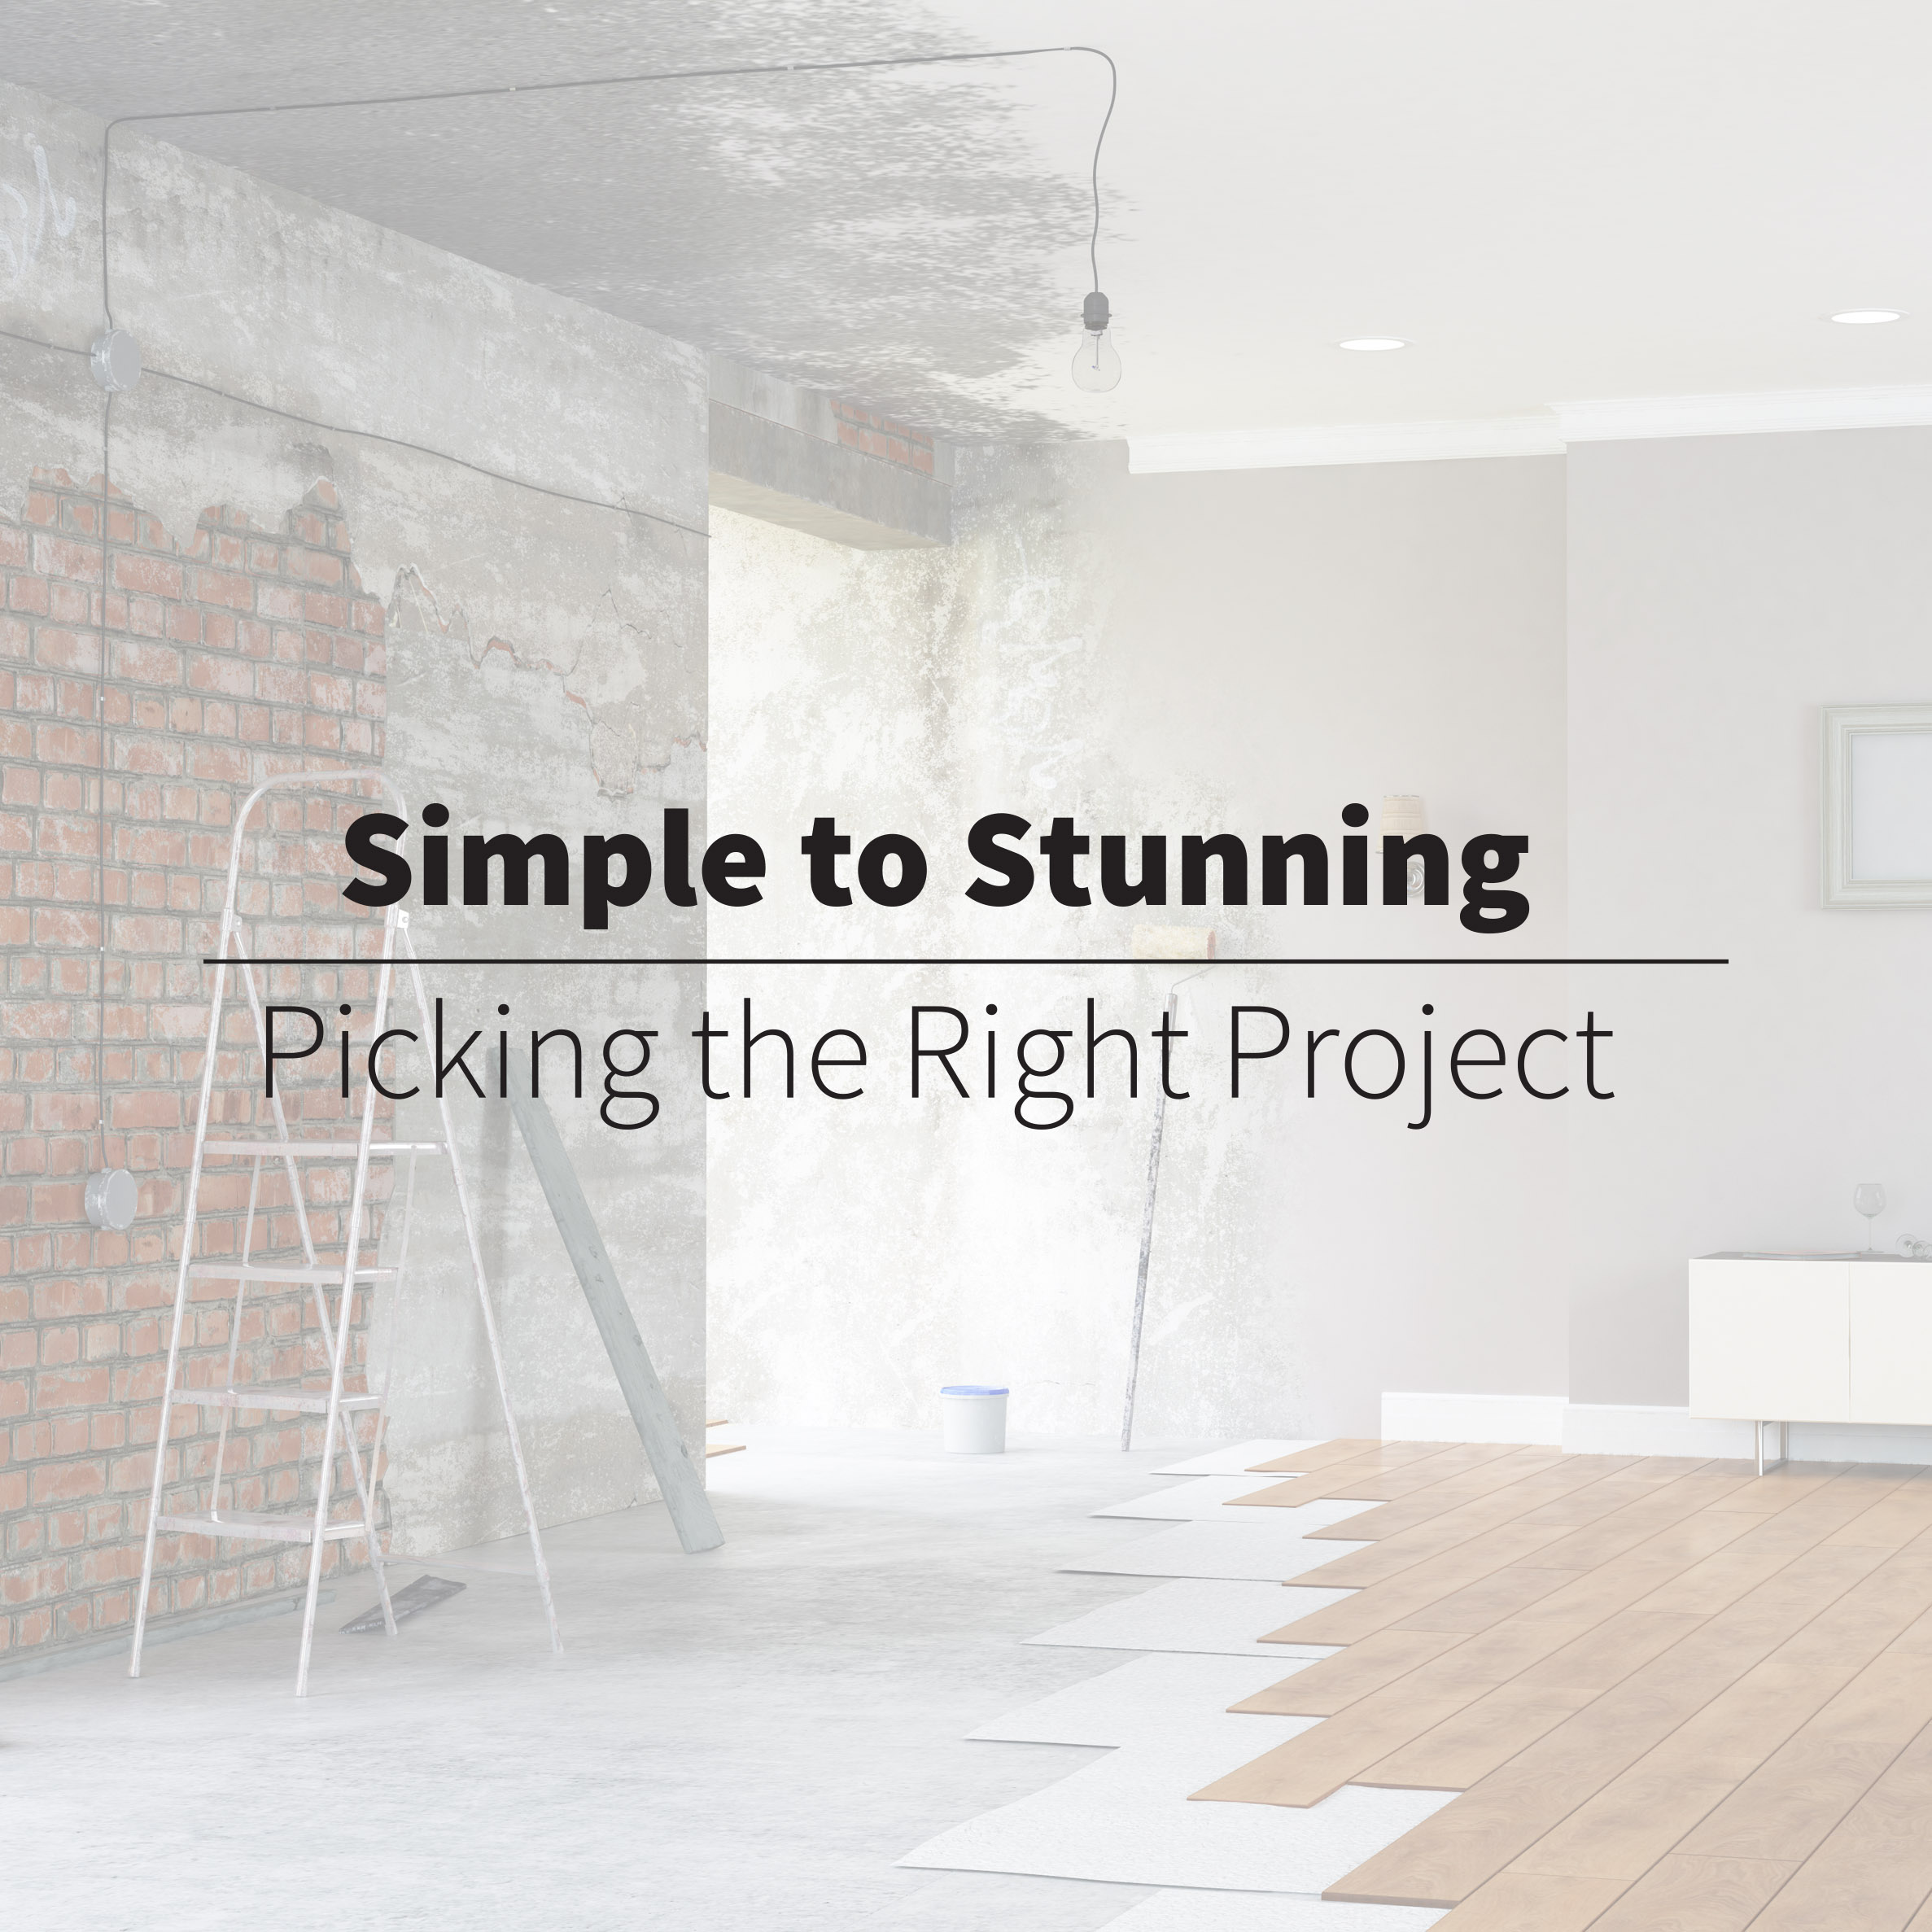 simple to stunning pick the right project blog